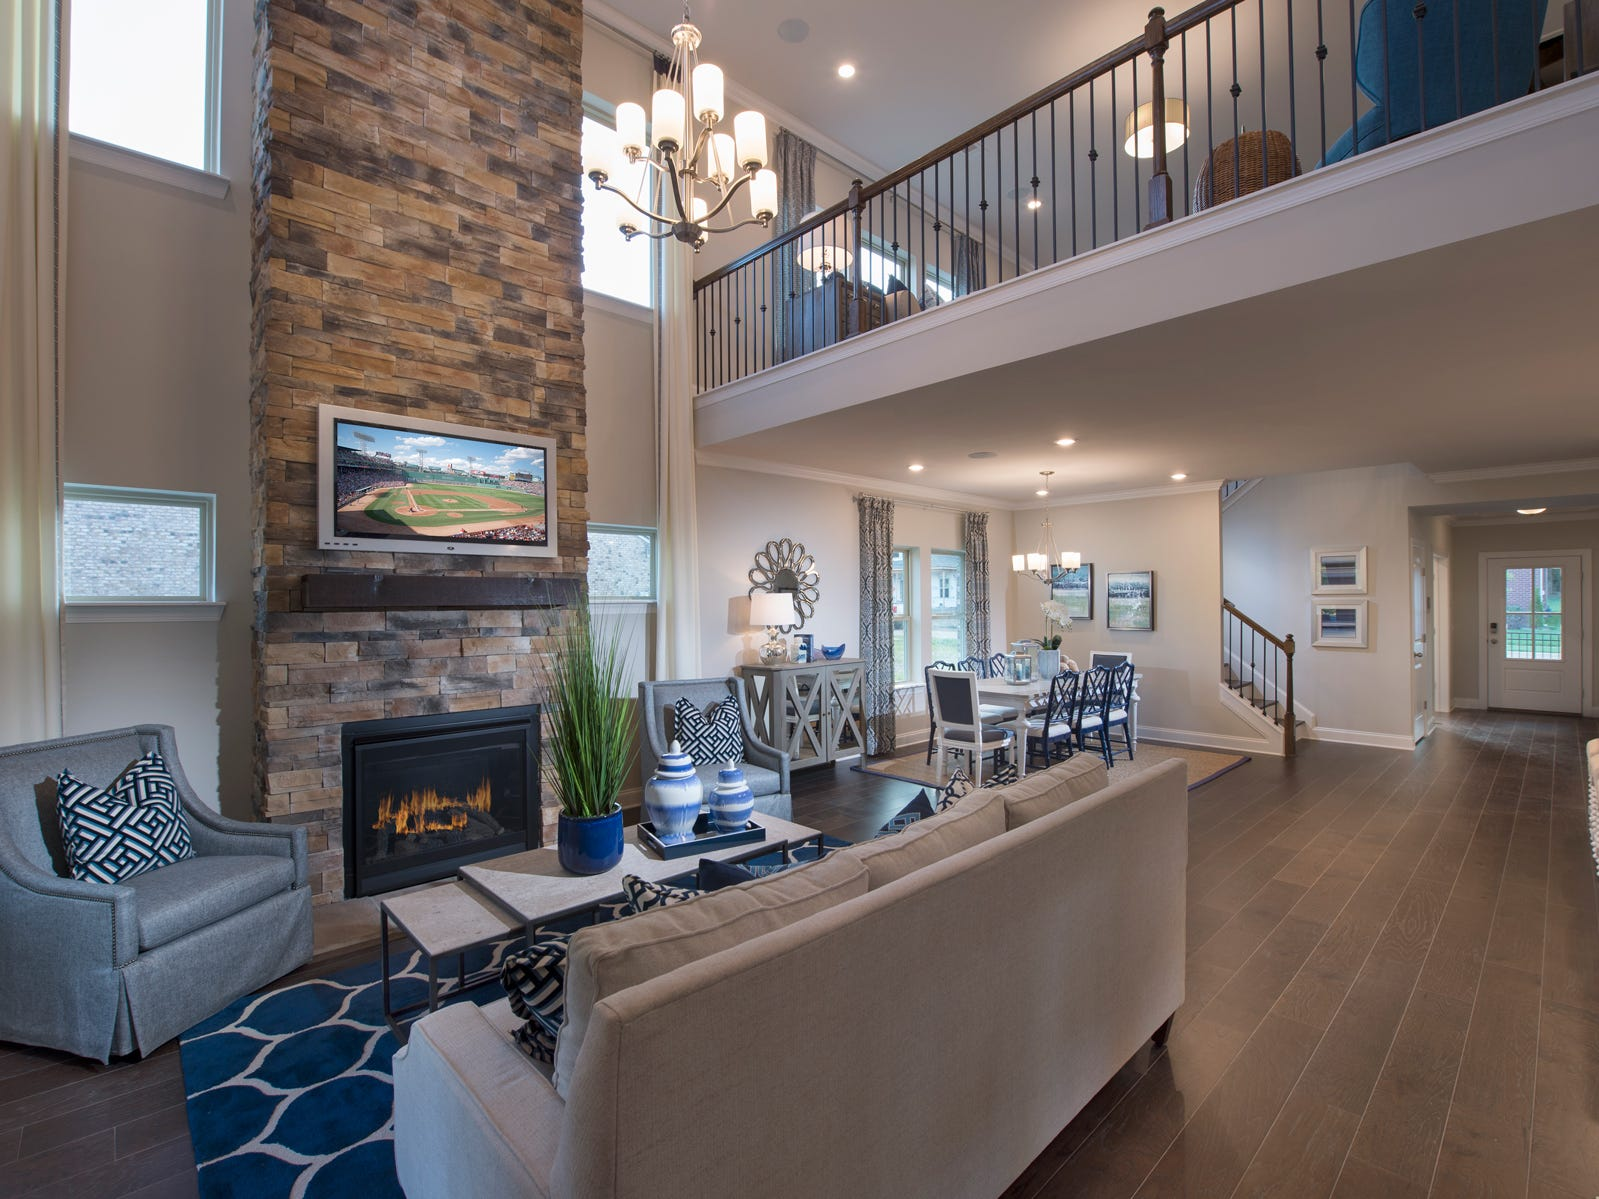 Meritage's single-family homes in Foxland Harbor have spacious interiors.